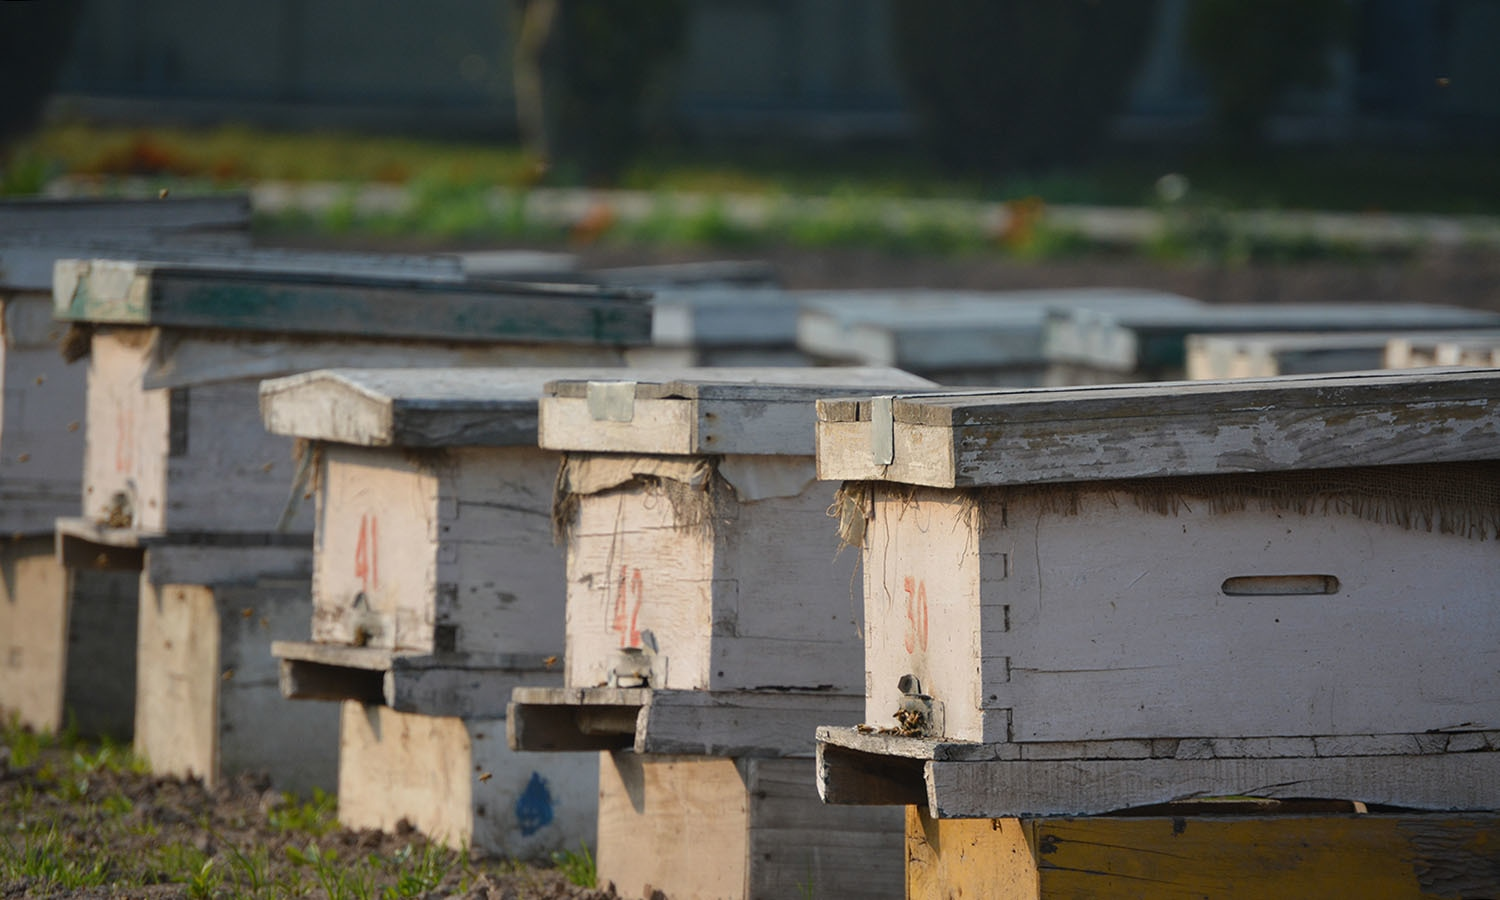 Average Pakistani beehive produces 10-15 kg of honey per season while an average Australian beehive produces 25-30 kg. — Photo by author